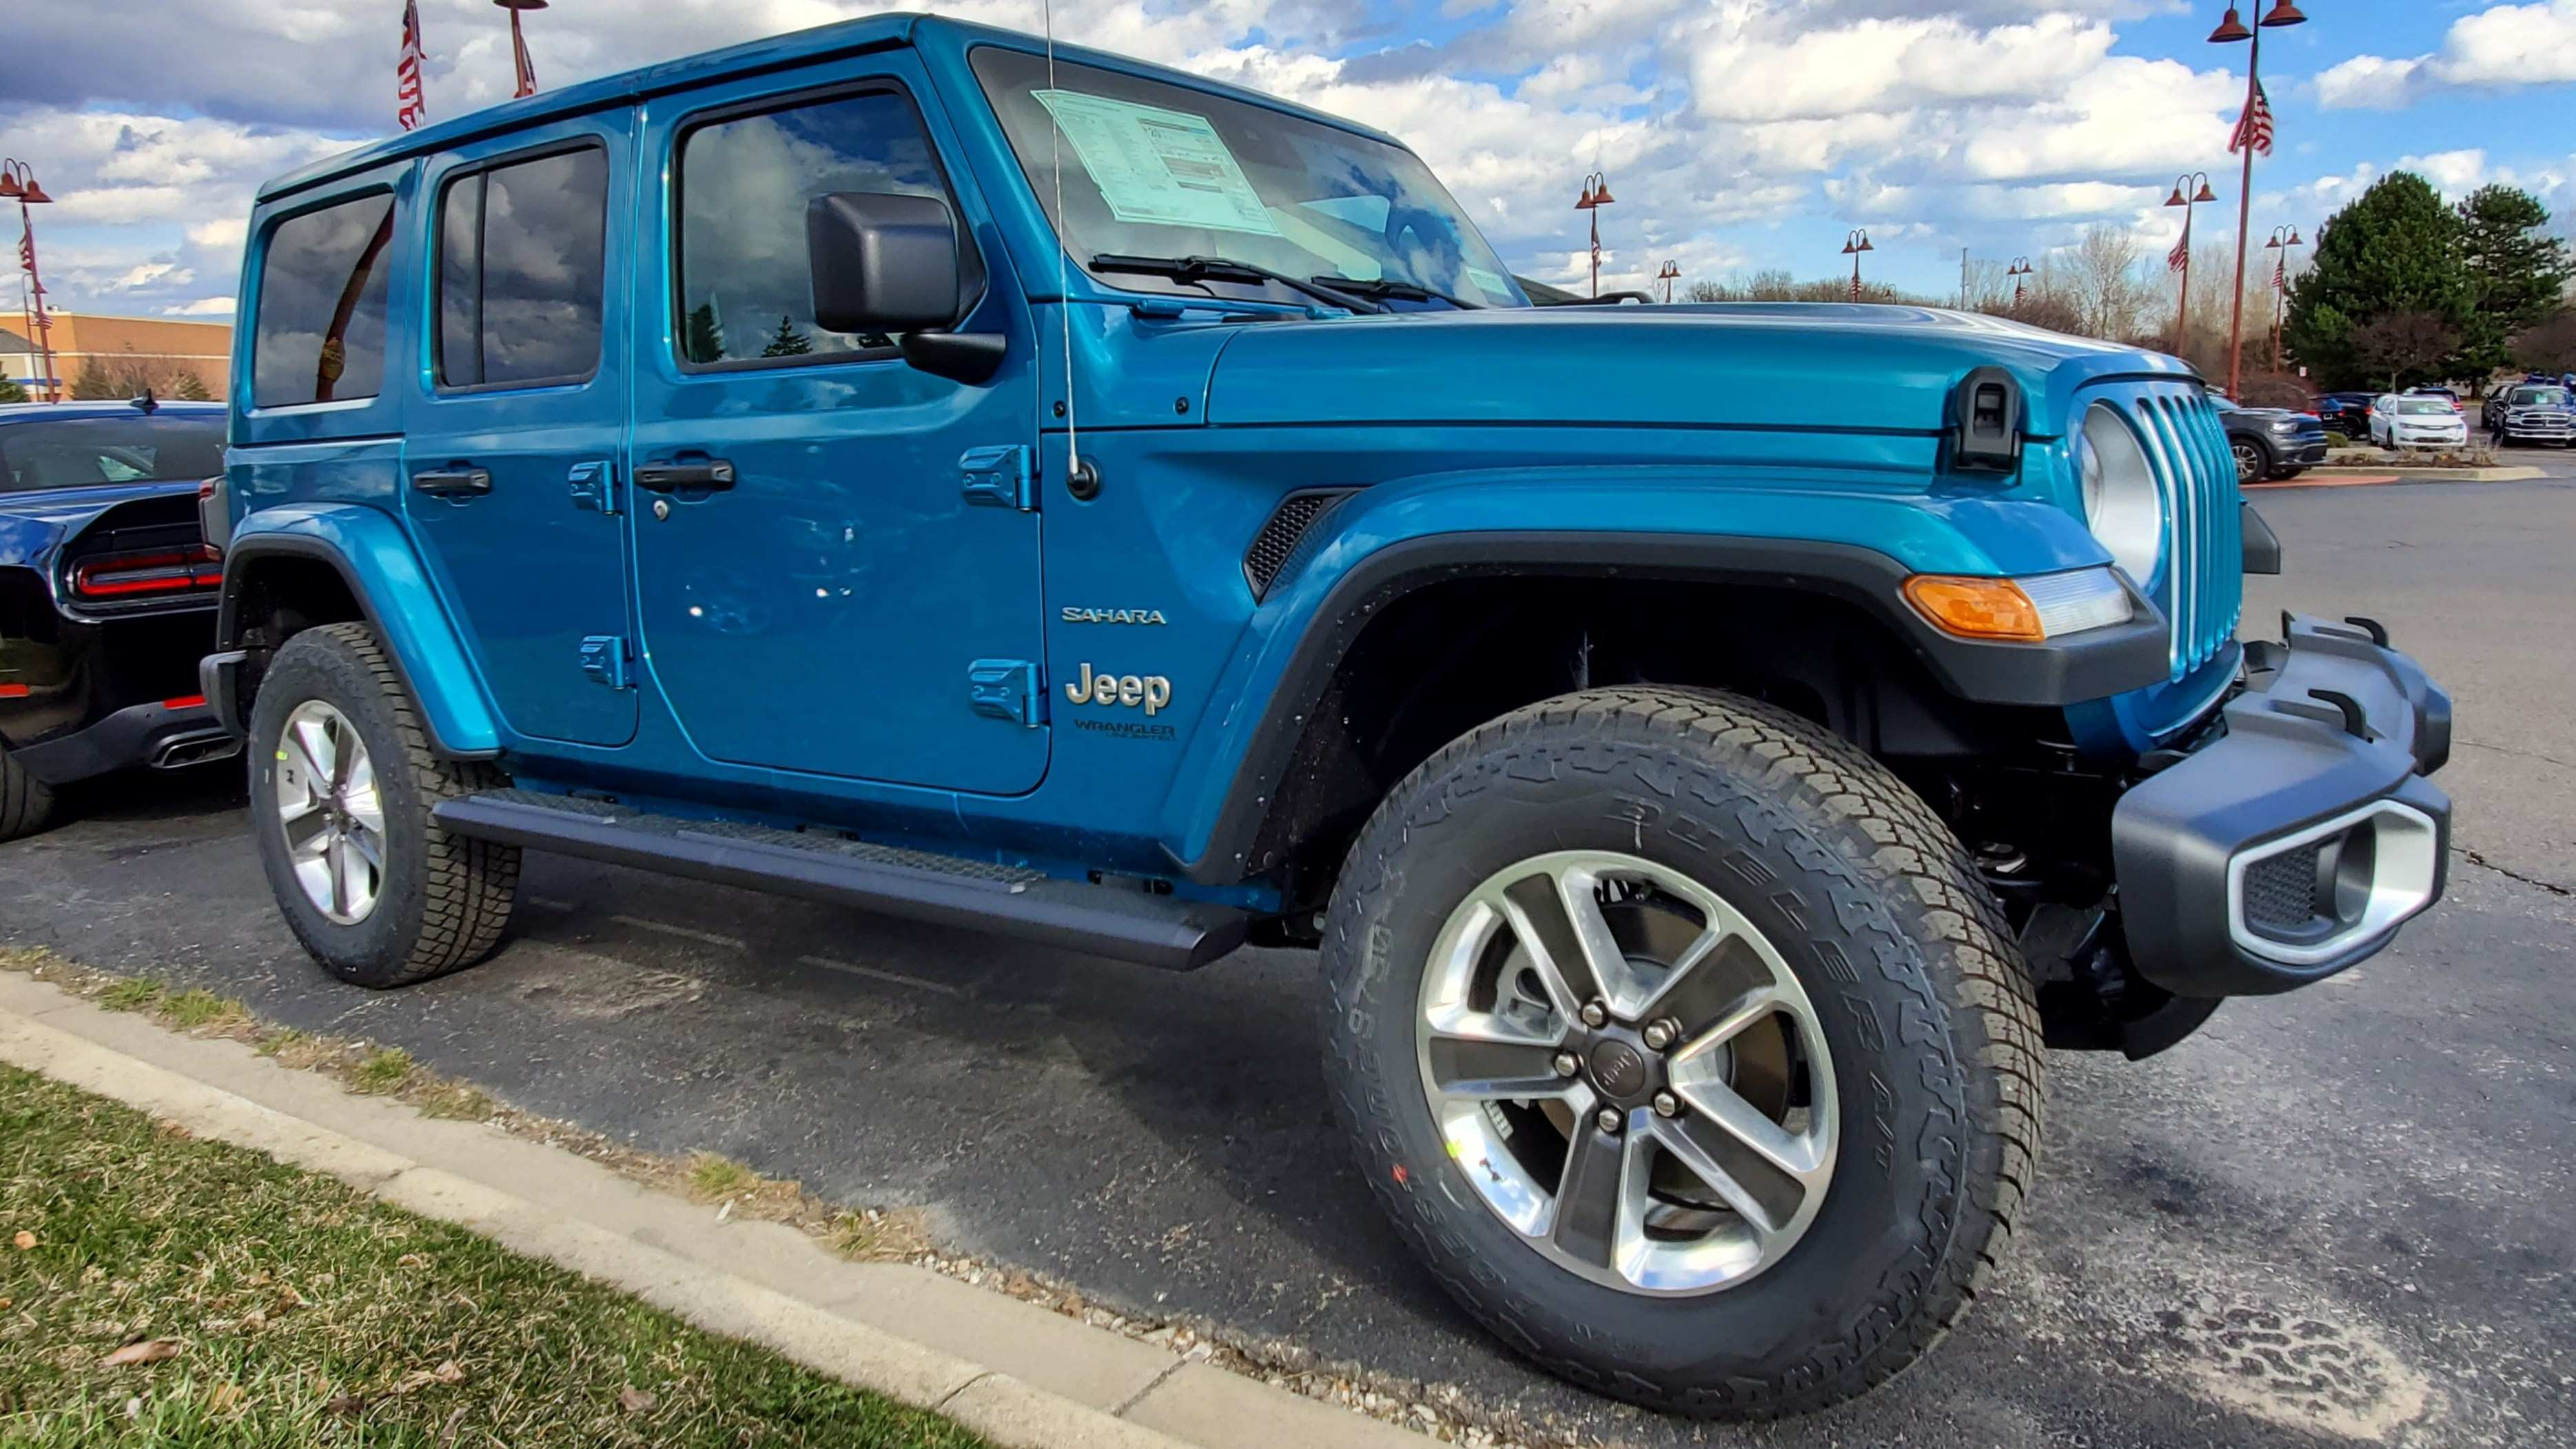 97 A 2020 Jeep Wrangler Unlimited Colors Redesign And Review